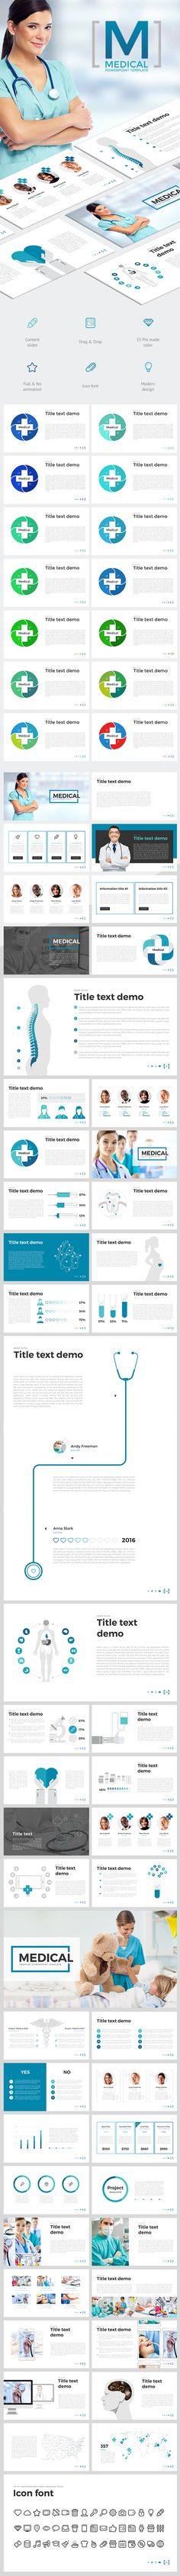 Medical PowerPoint Template. Download here: http://graphicriver.net/item/medical/15999384?ref=ksioks